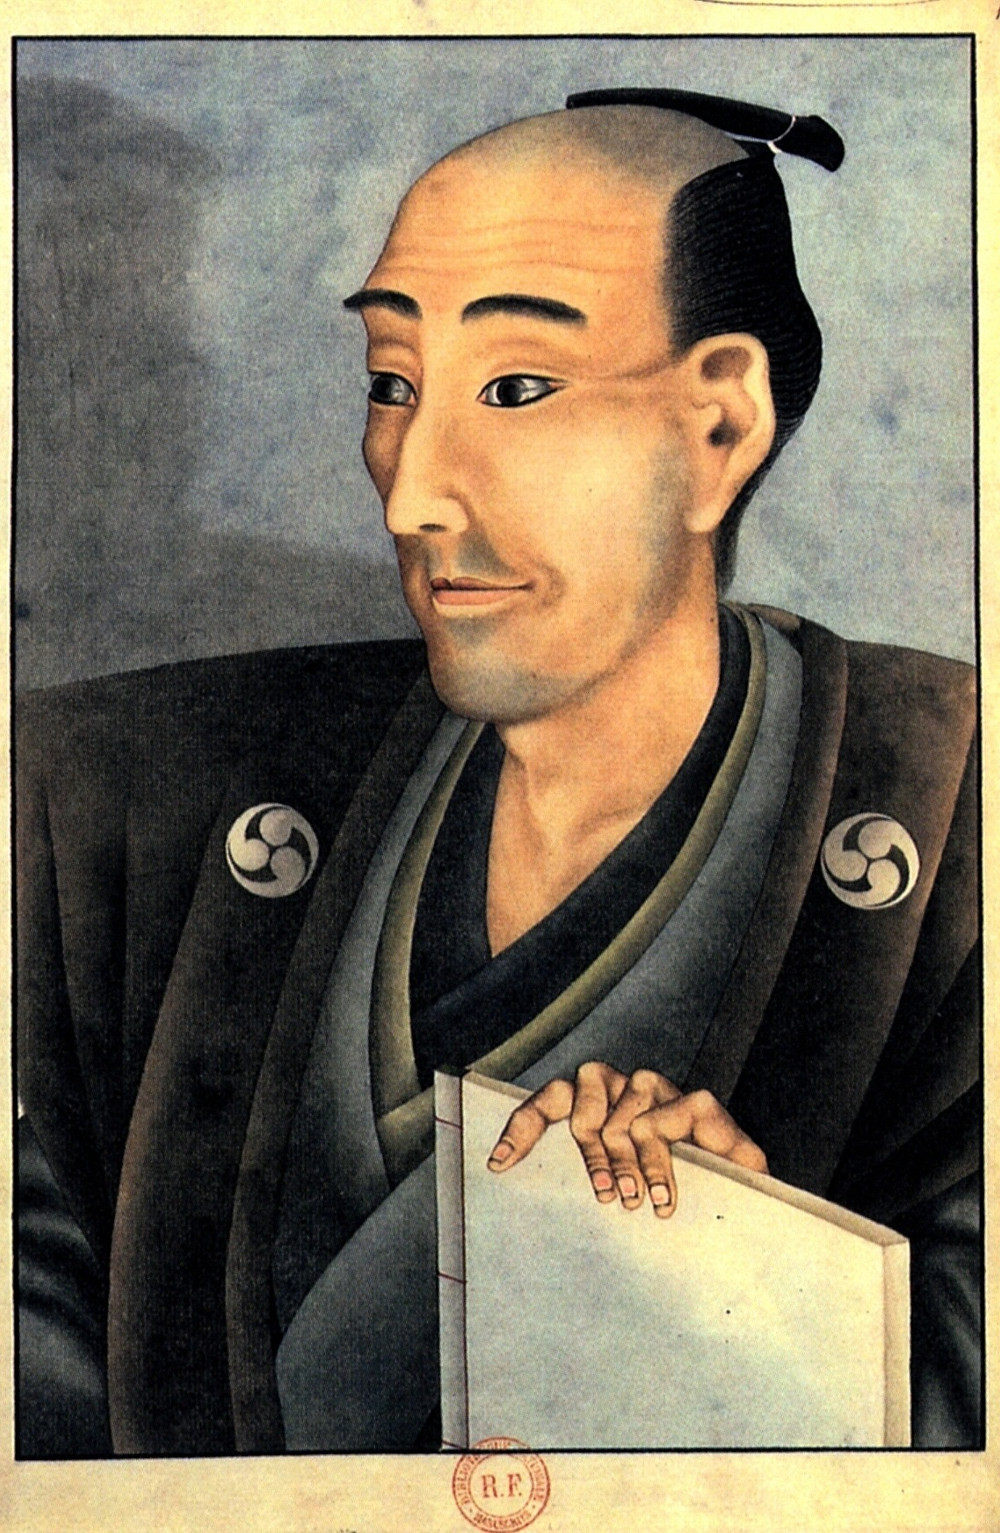 Man with samurai style haircut.